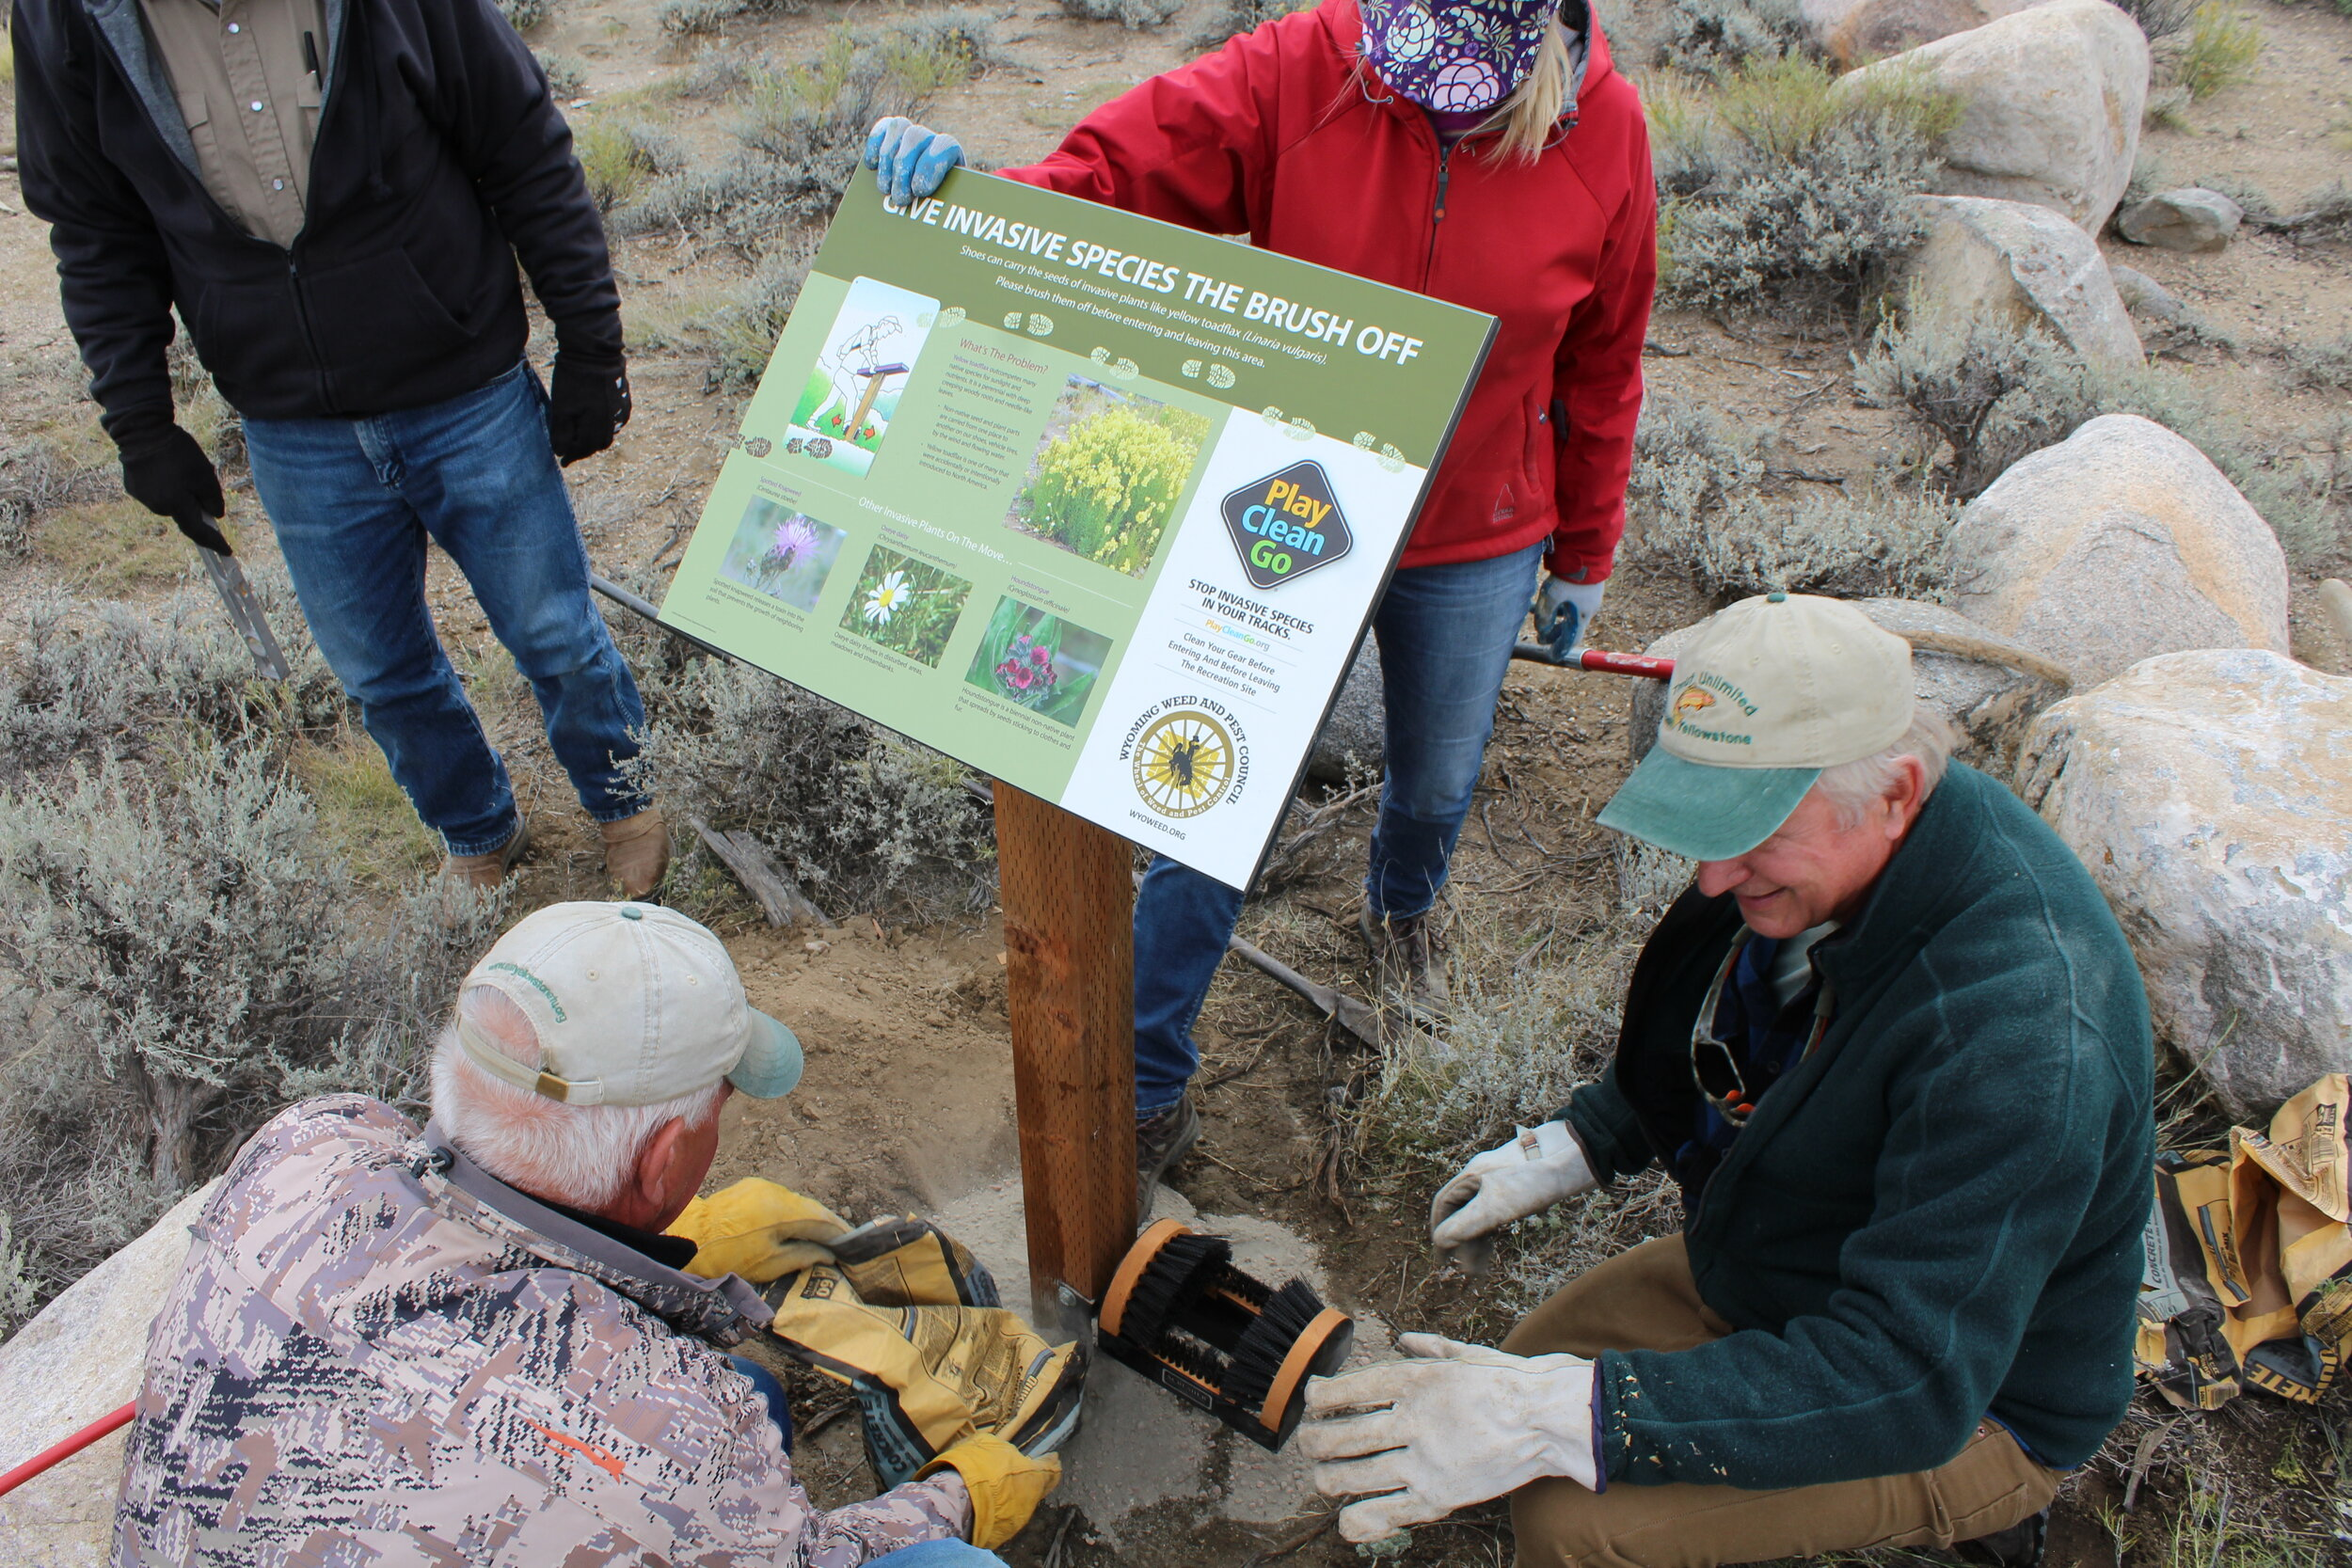 Volunteers put the finishing touches on an invasive plant information sign and boot brush. (Photo GYC/Emily Reed.)